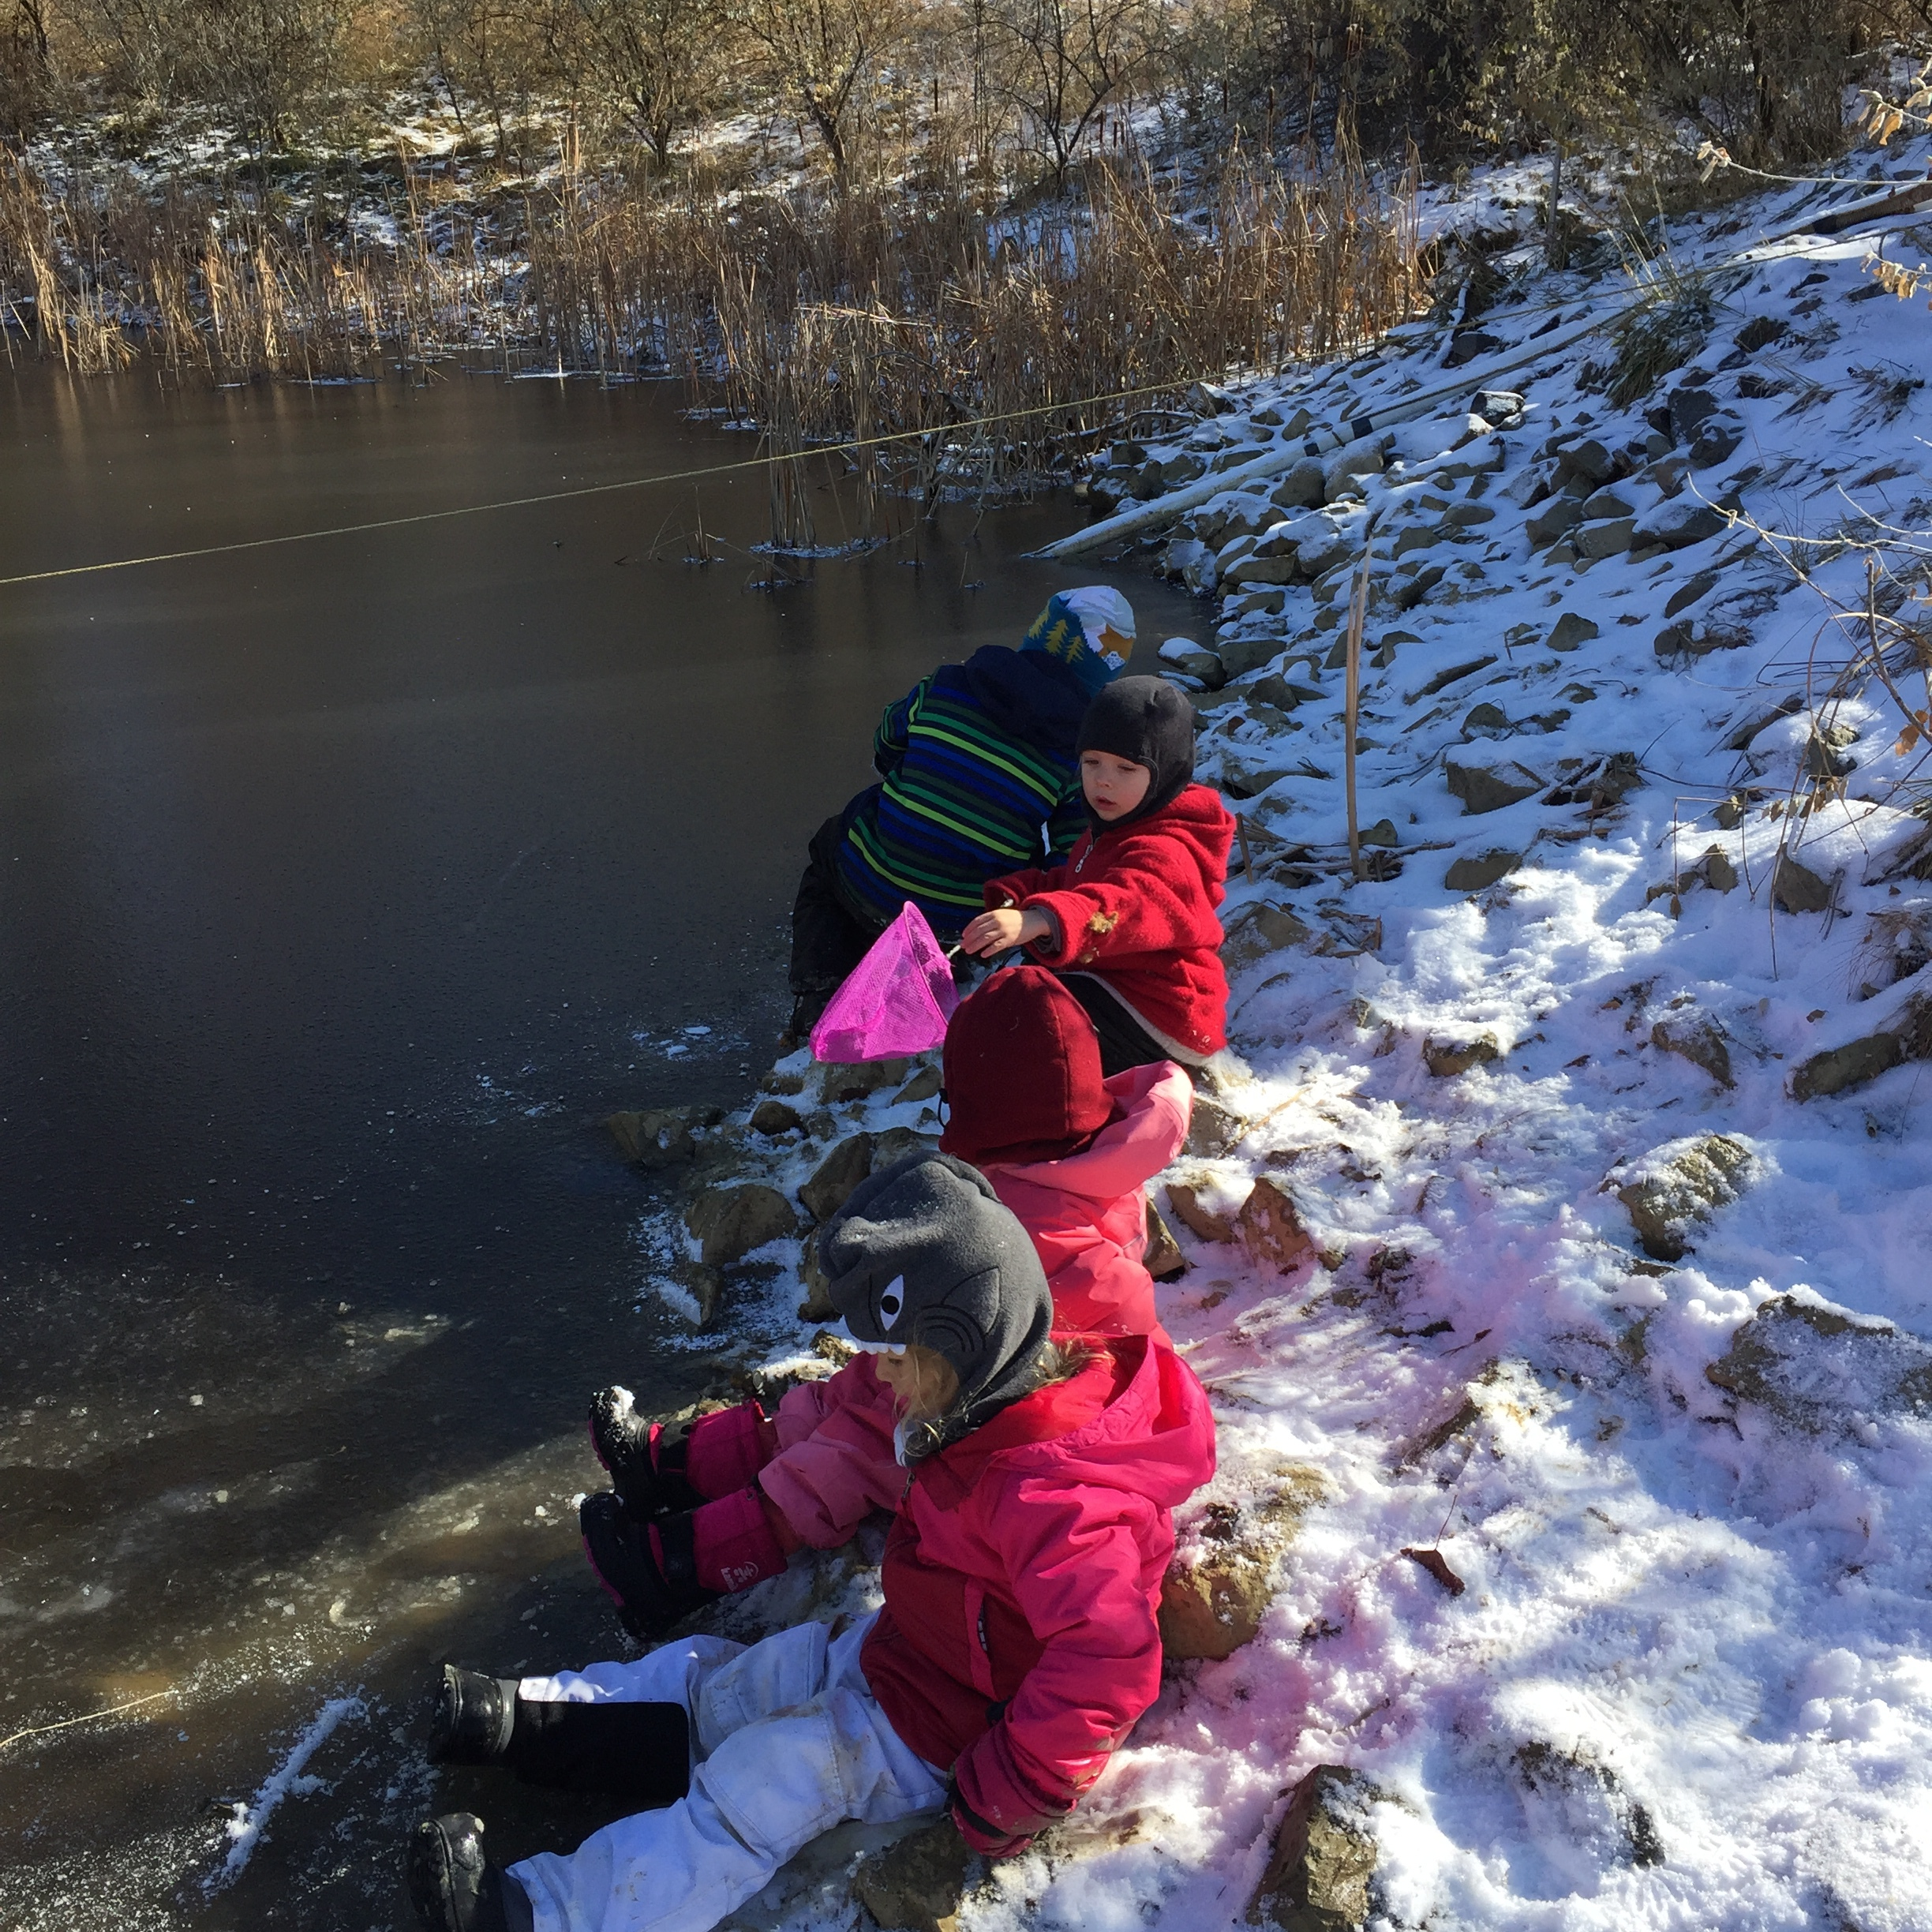 Time for some ice-safety education! The kids learned that you must never step onto an icy body of water. They sat on the shore and felt how slippery the ice was with their boots. Having the chance to experience the ice will help them understand the hazard.